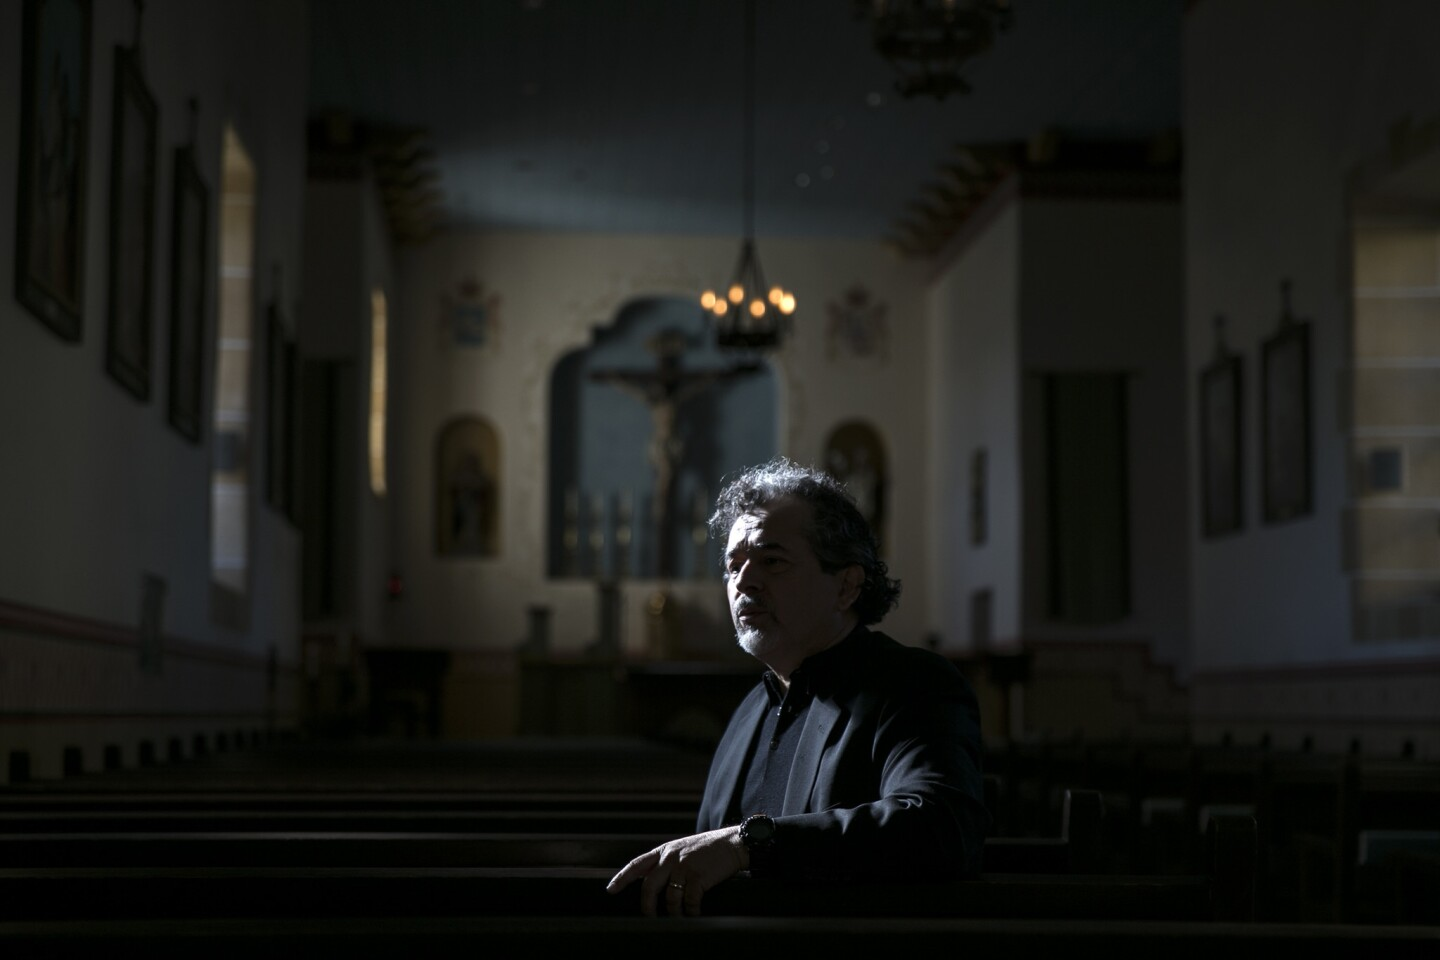 Ruben Mendoza, director of the California missions archaeological program at Cal State Monterey Bay, is half Yaqui Indian and half Mexican American.